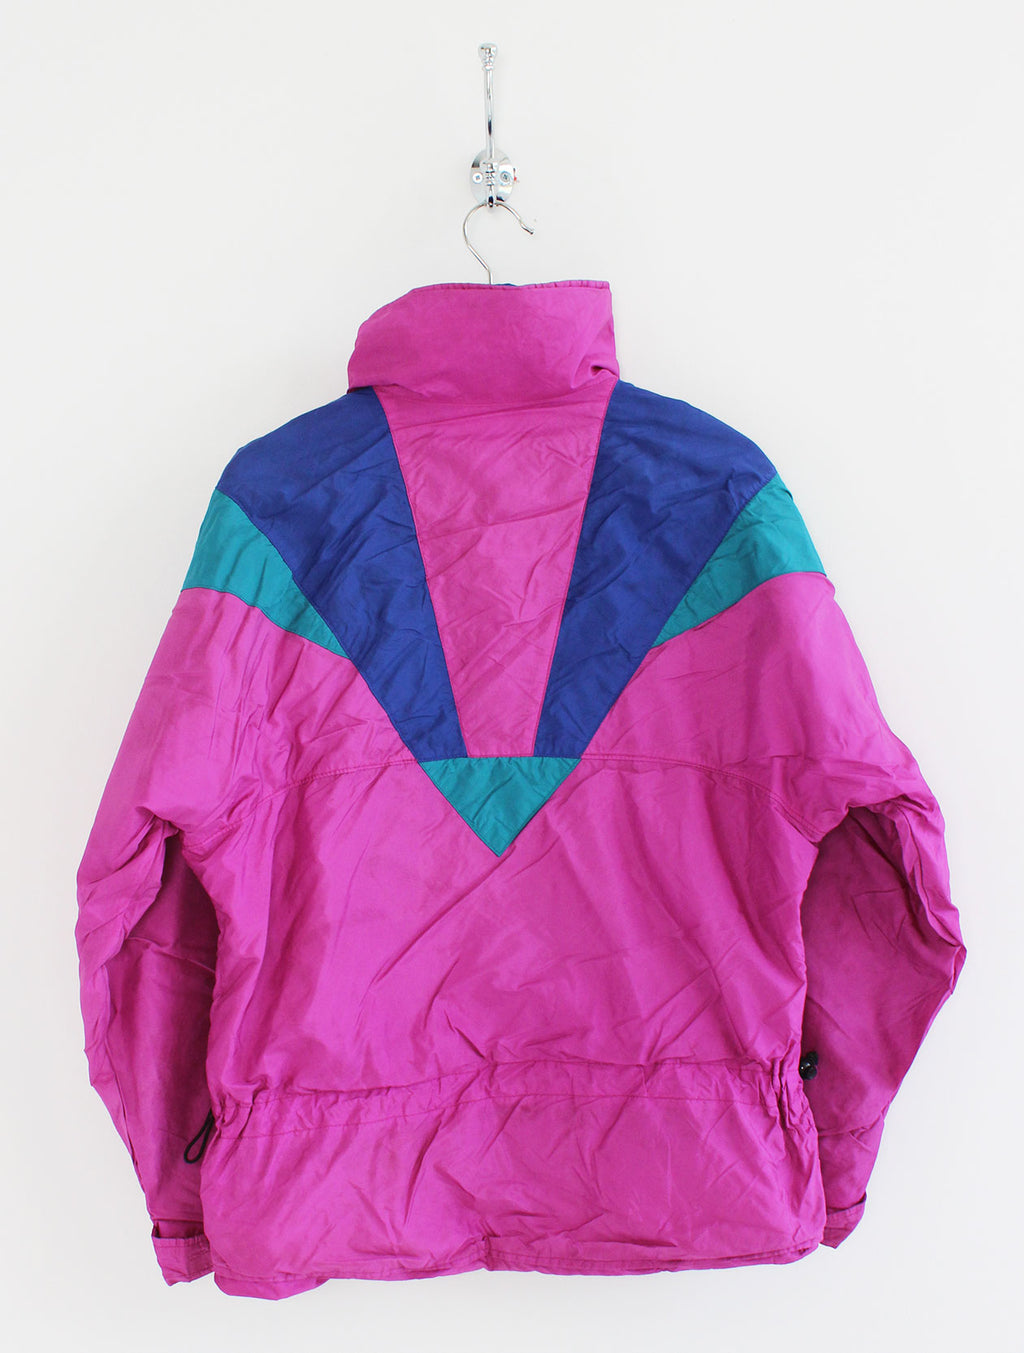 Women's The North Face Extreme Jacket (10)